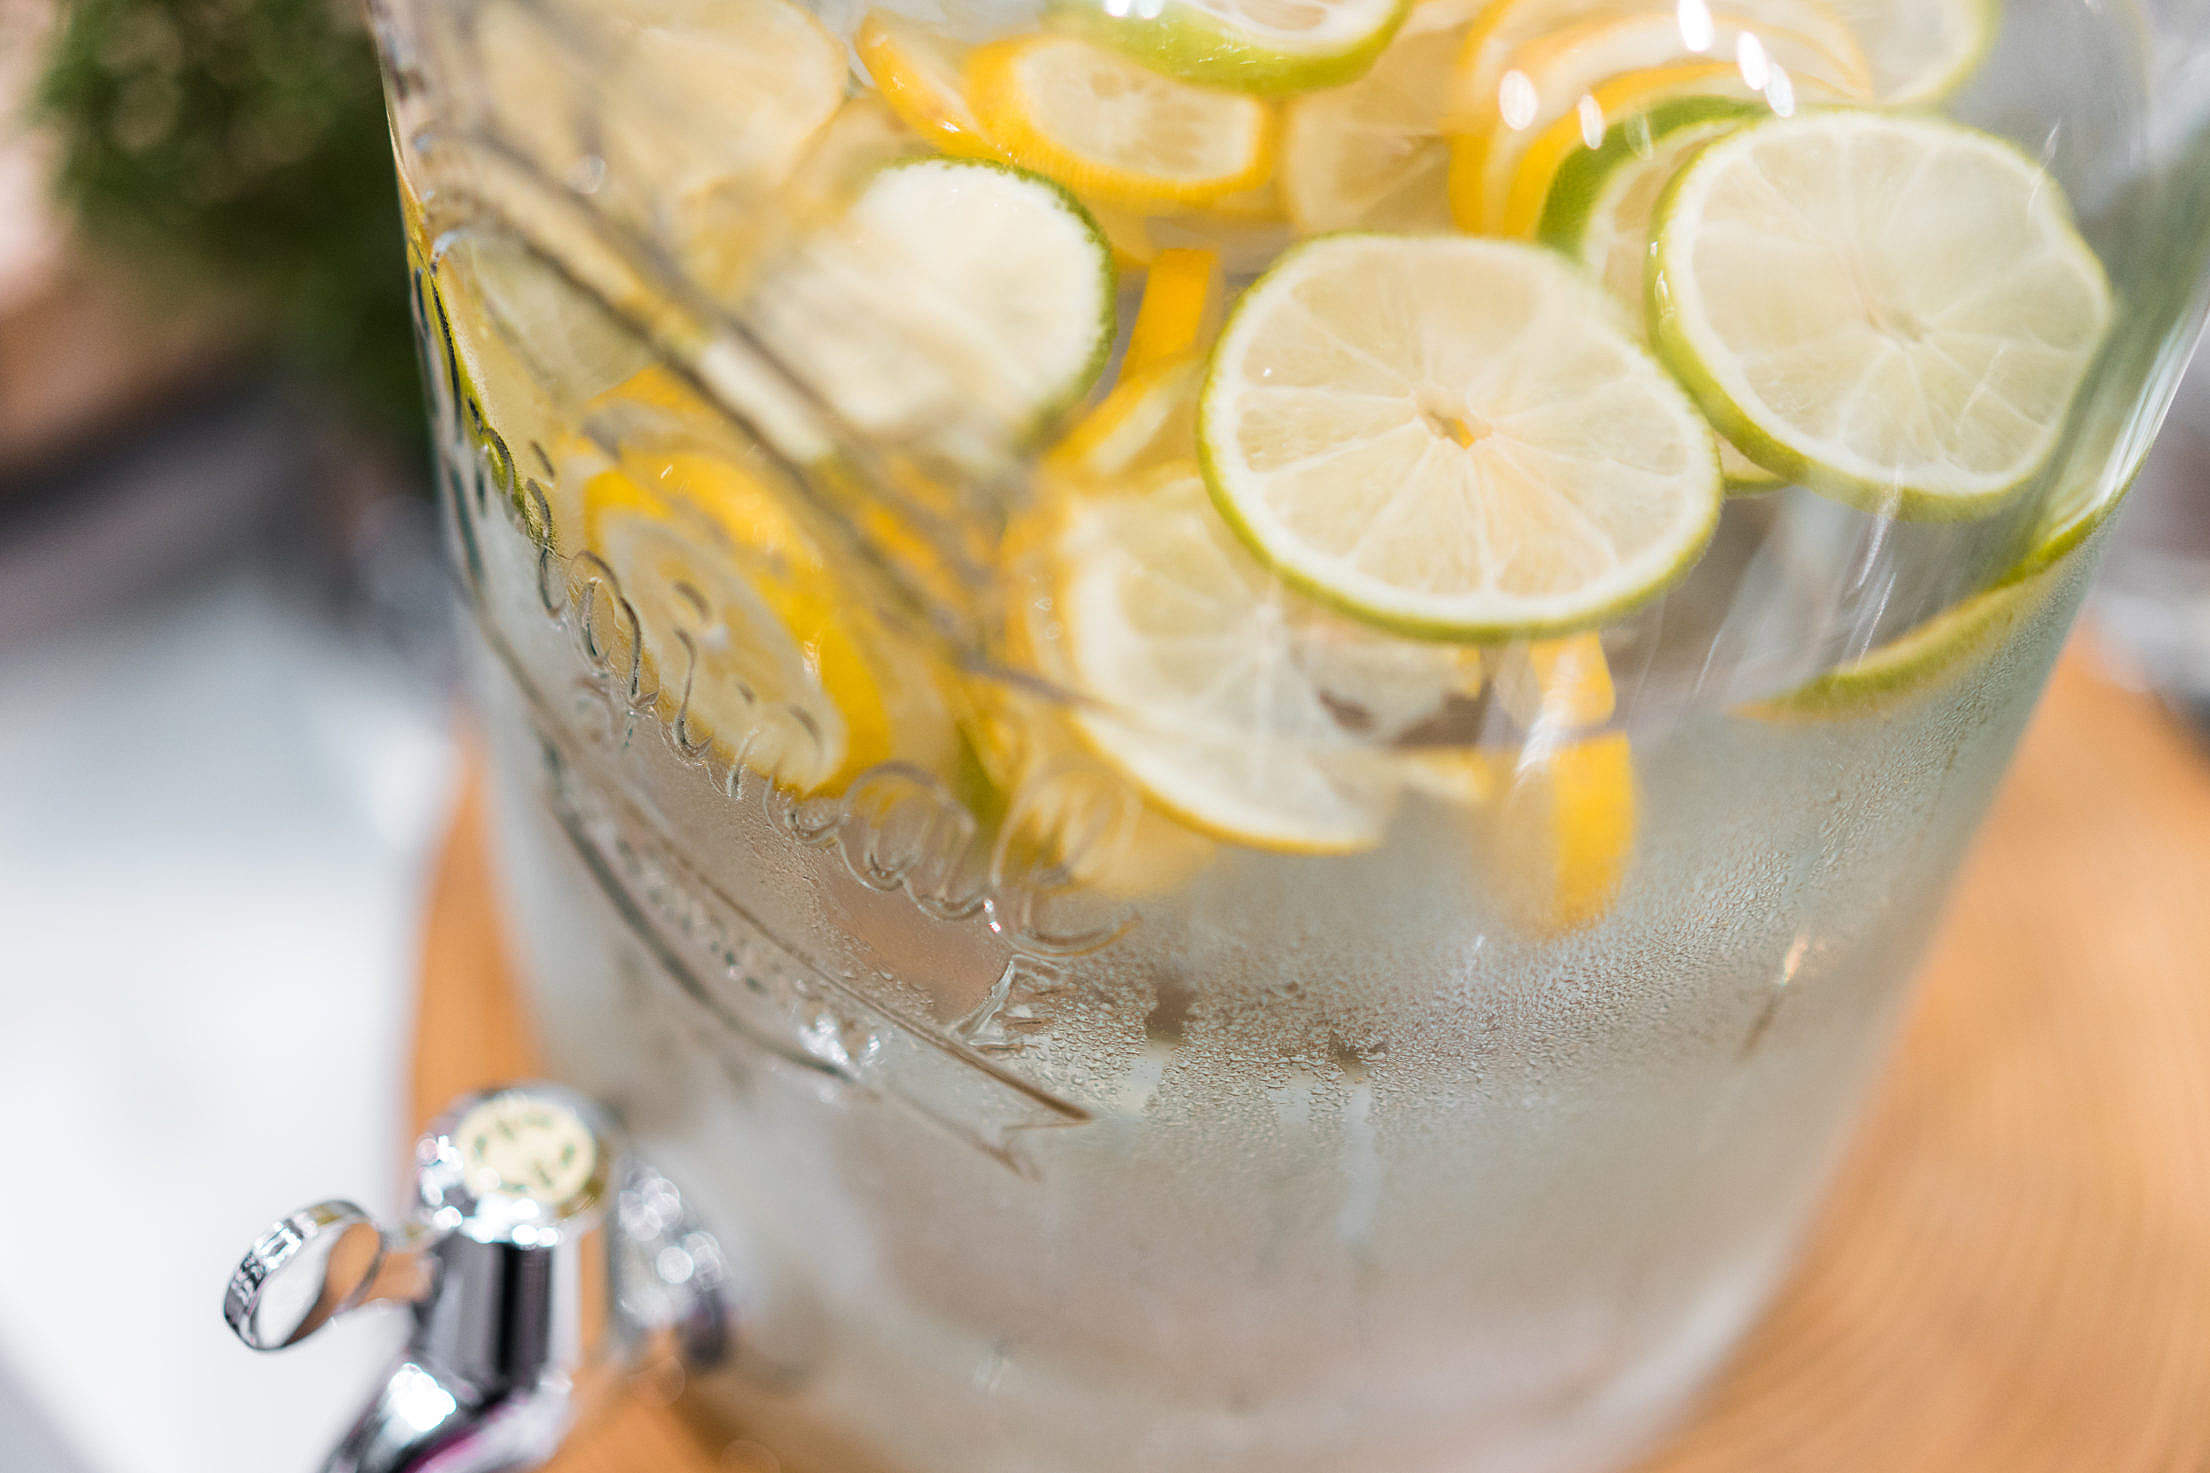 Fresh Lemonade with Lime and Lemon Free Stock Photo